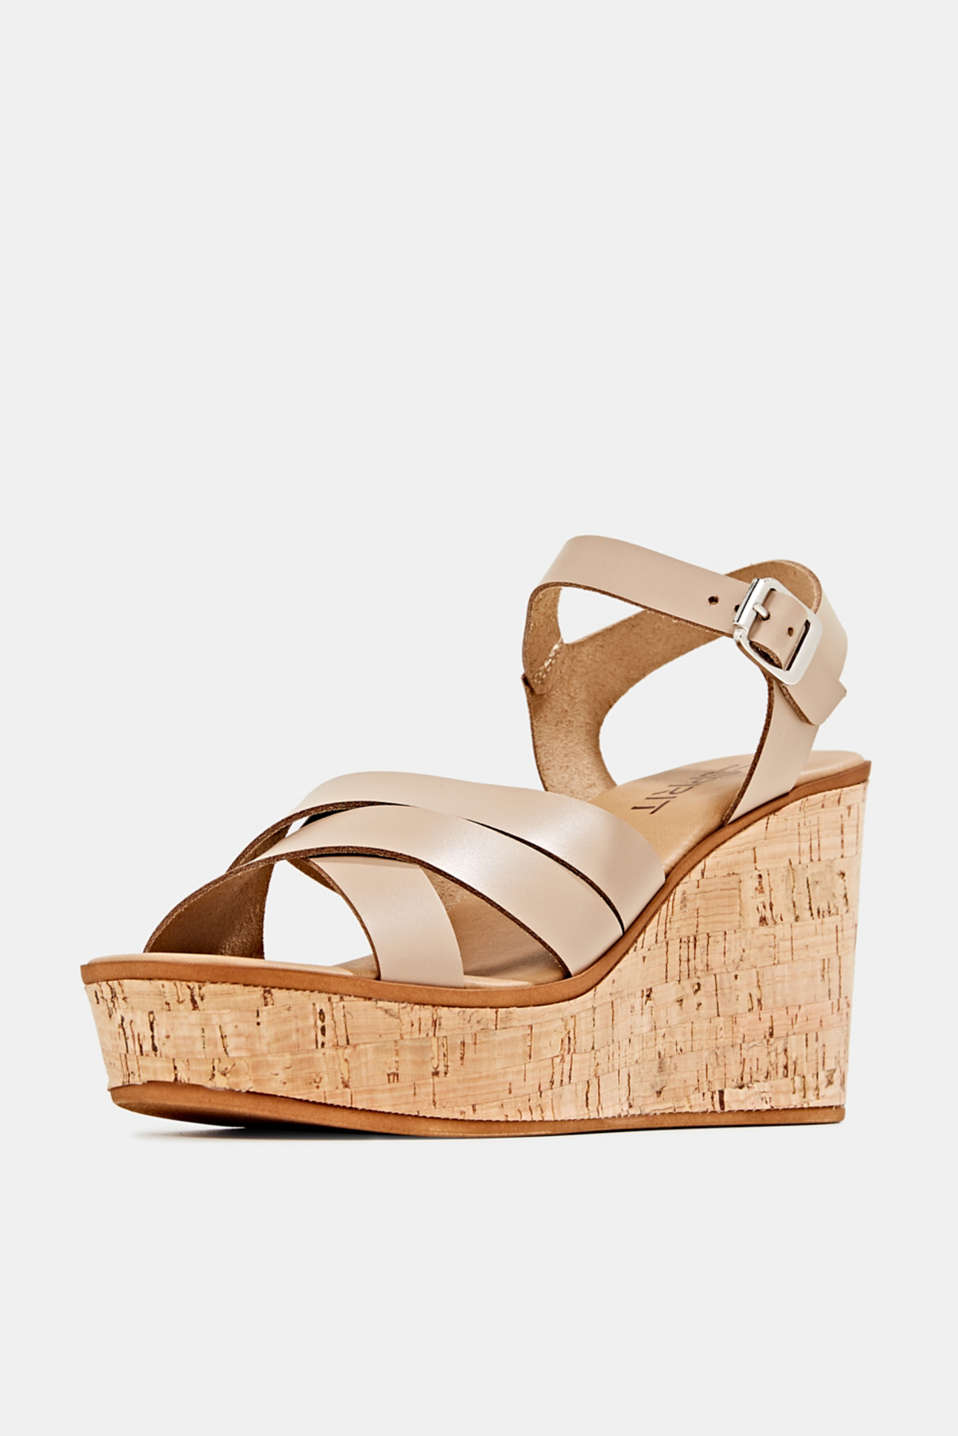 Leather wedge sandals, BEIGE, detail image number 2